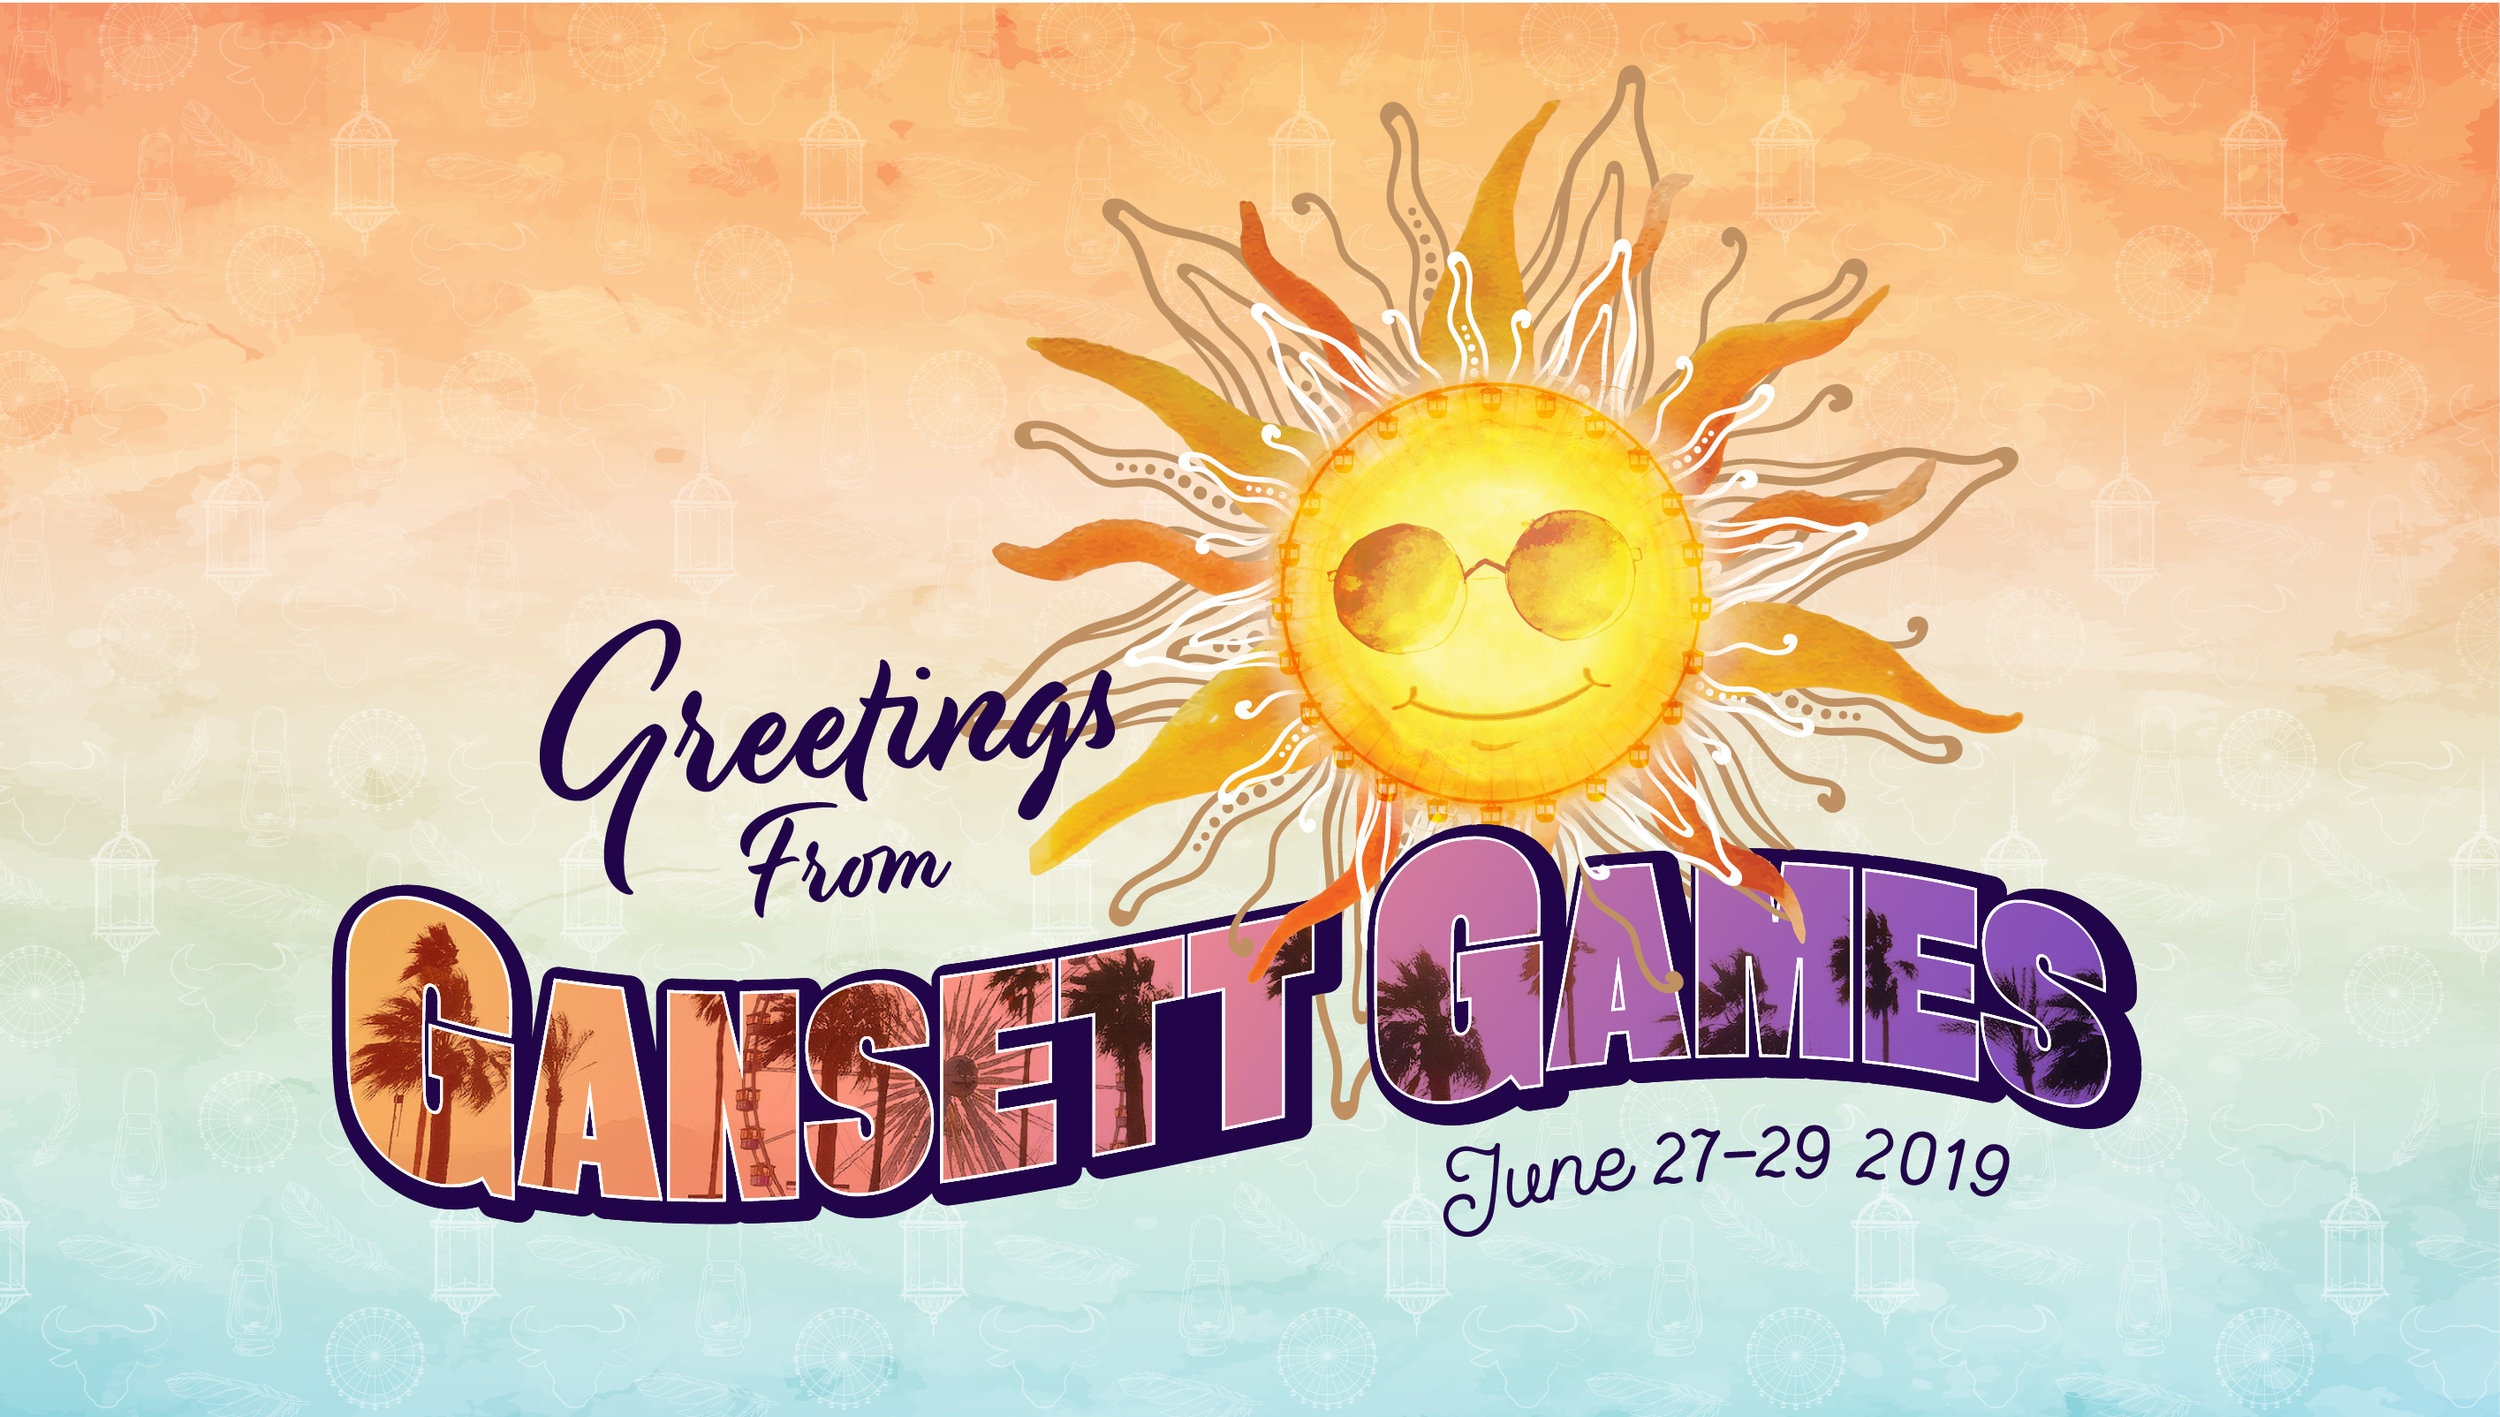 GansettGames2019-Greetings2.jpg